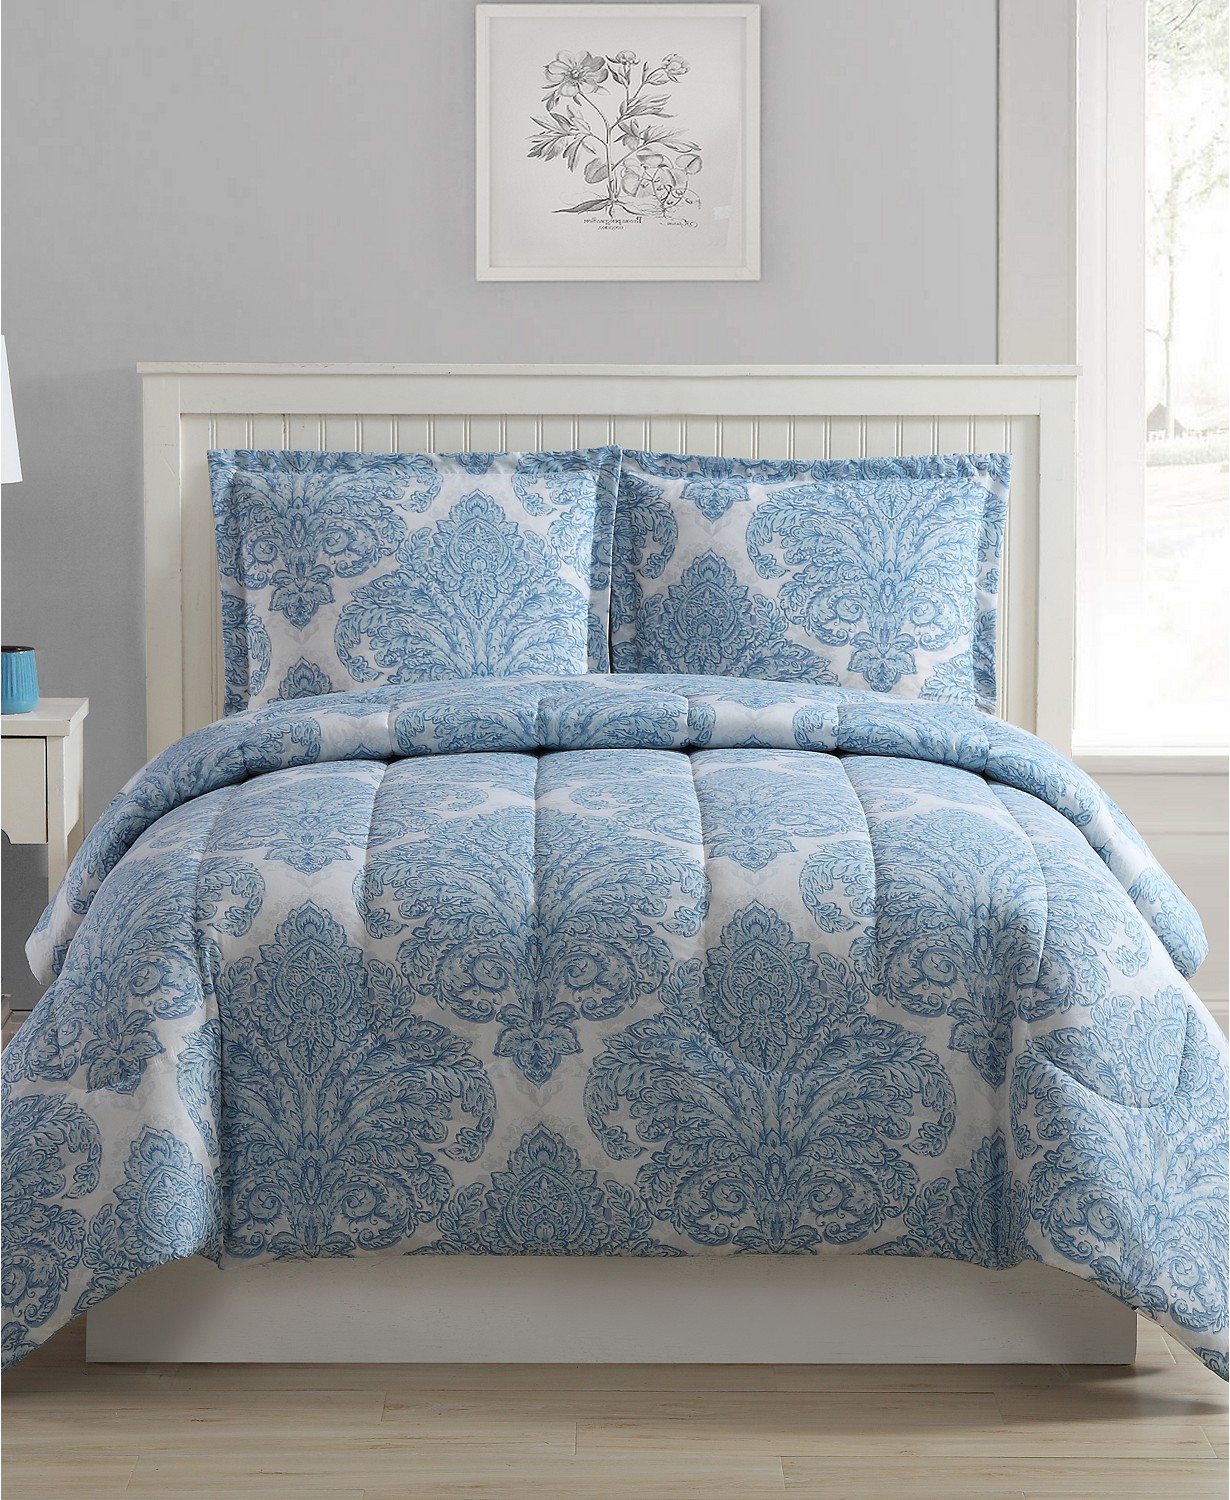 MACYS LIMITED TIME SPECIAL! 3 PIECE COMFORTER BED SETS FOR ONLY $19.99! (ALL SIZES)